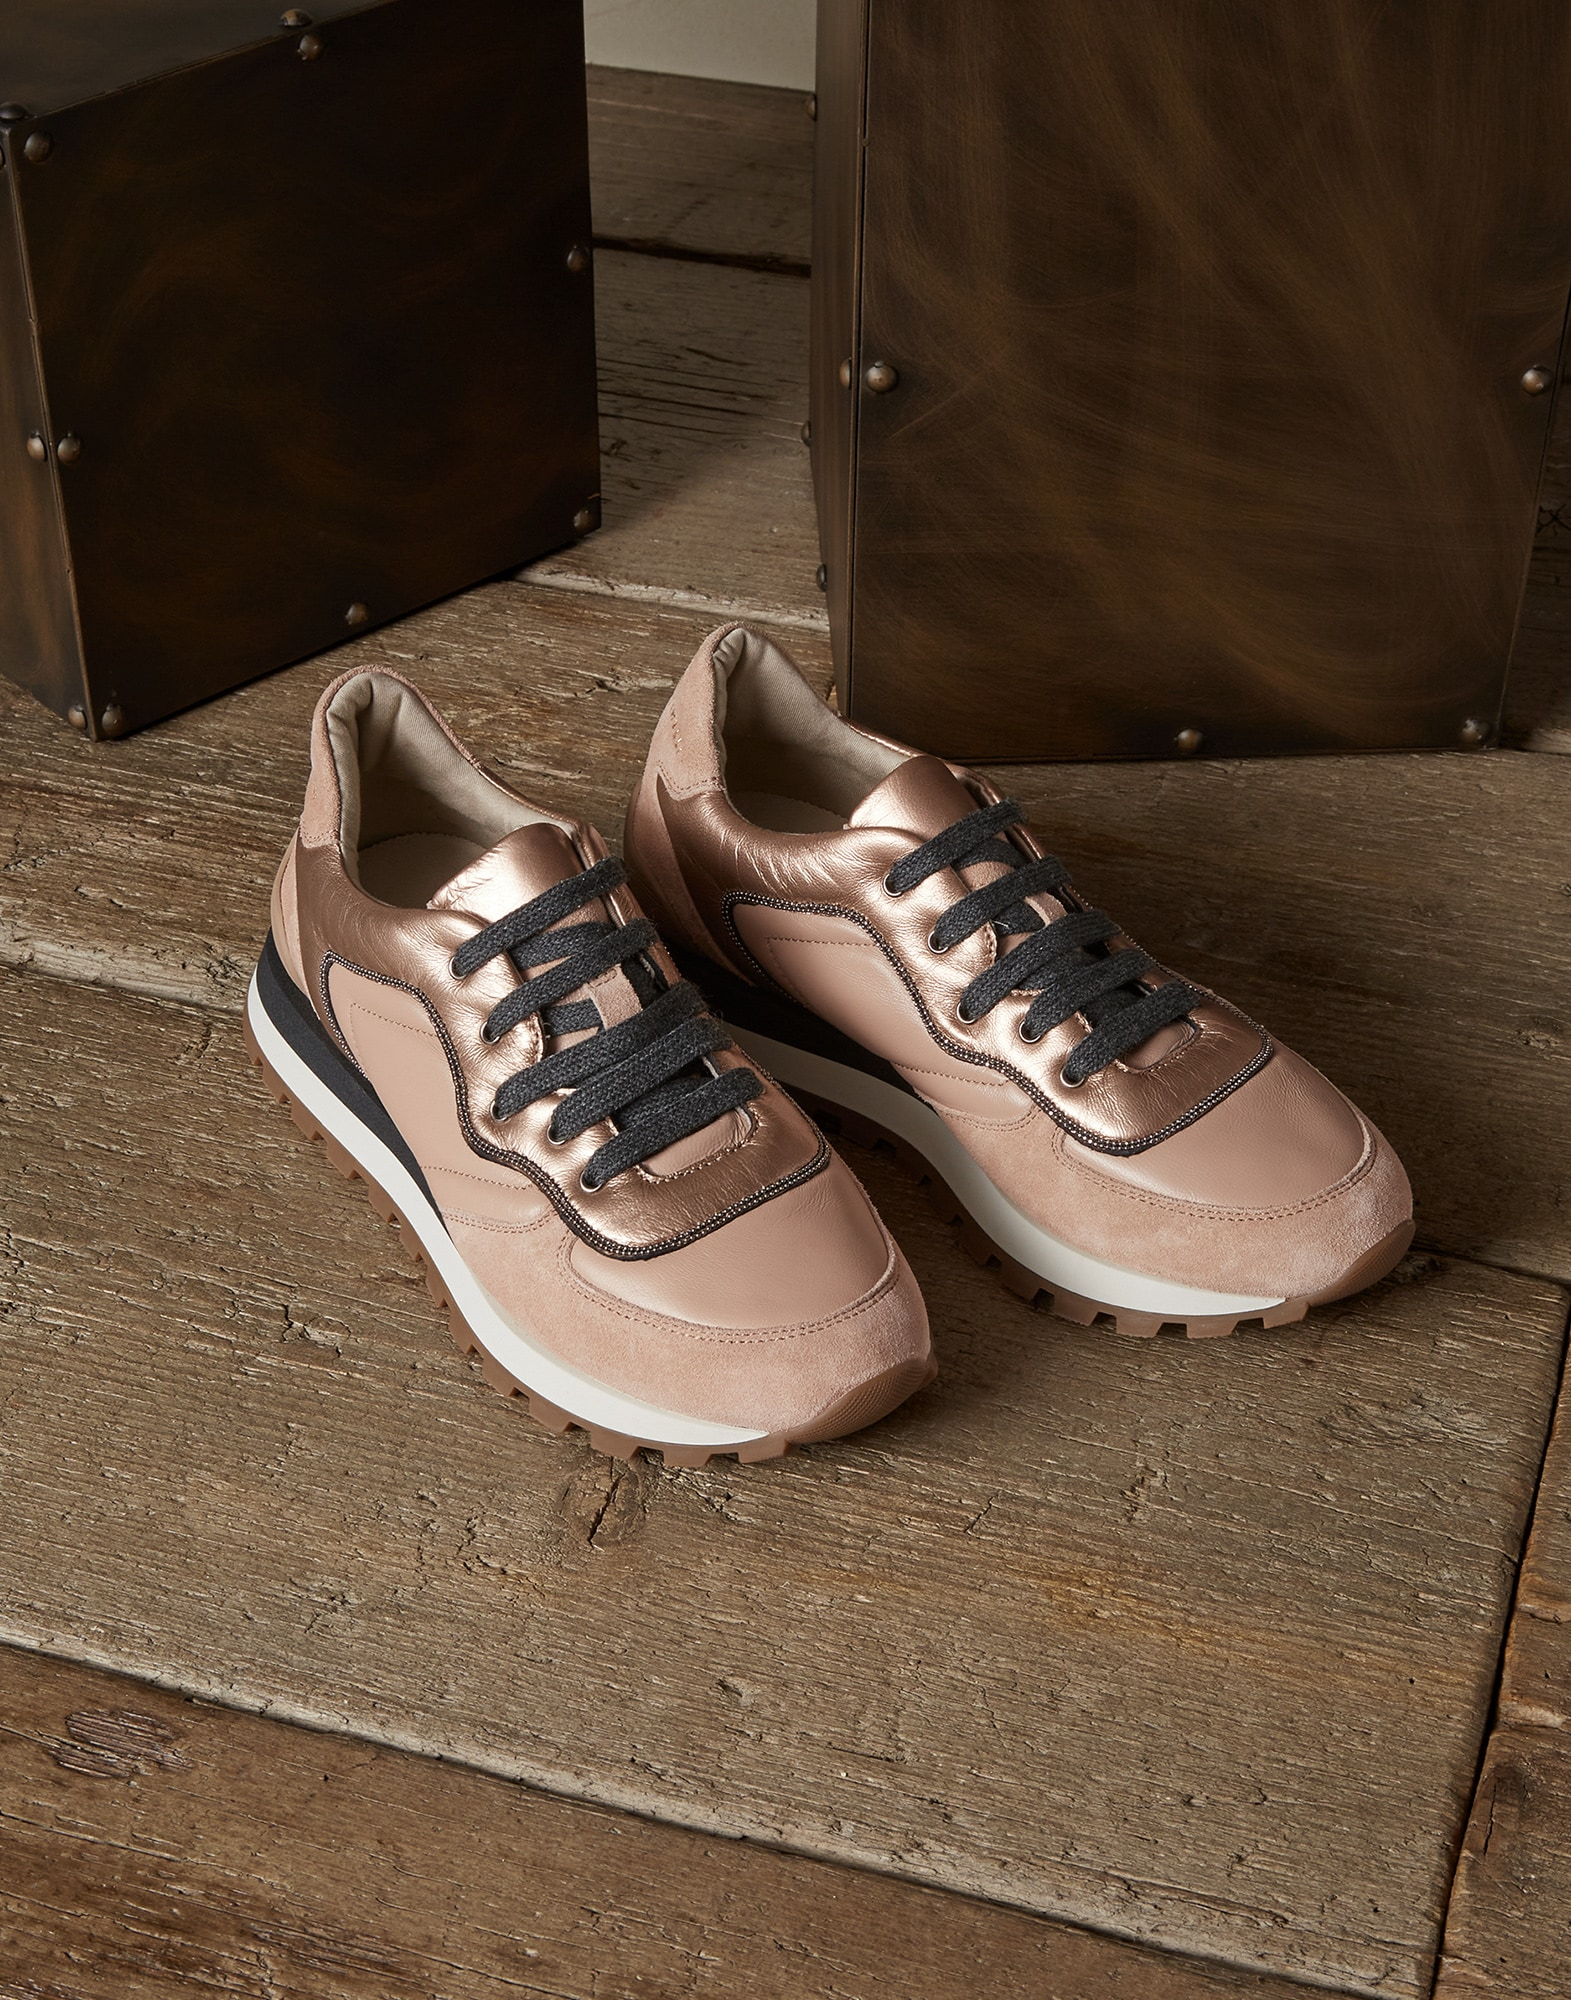 Sneakers Rose Gold Woman 1 - Brunello Cucinelli